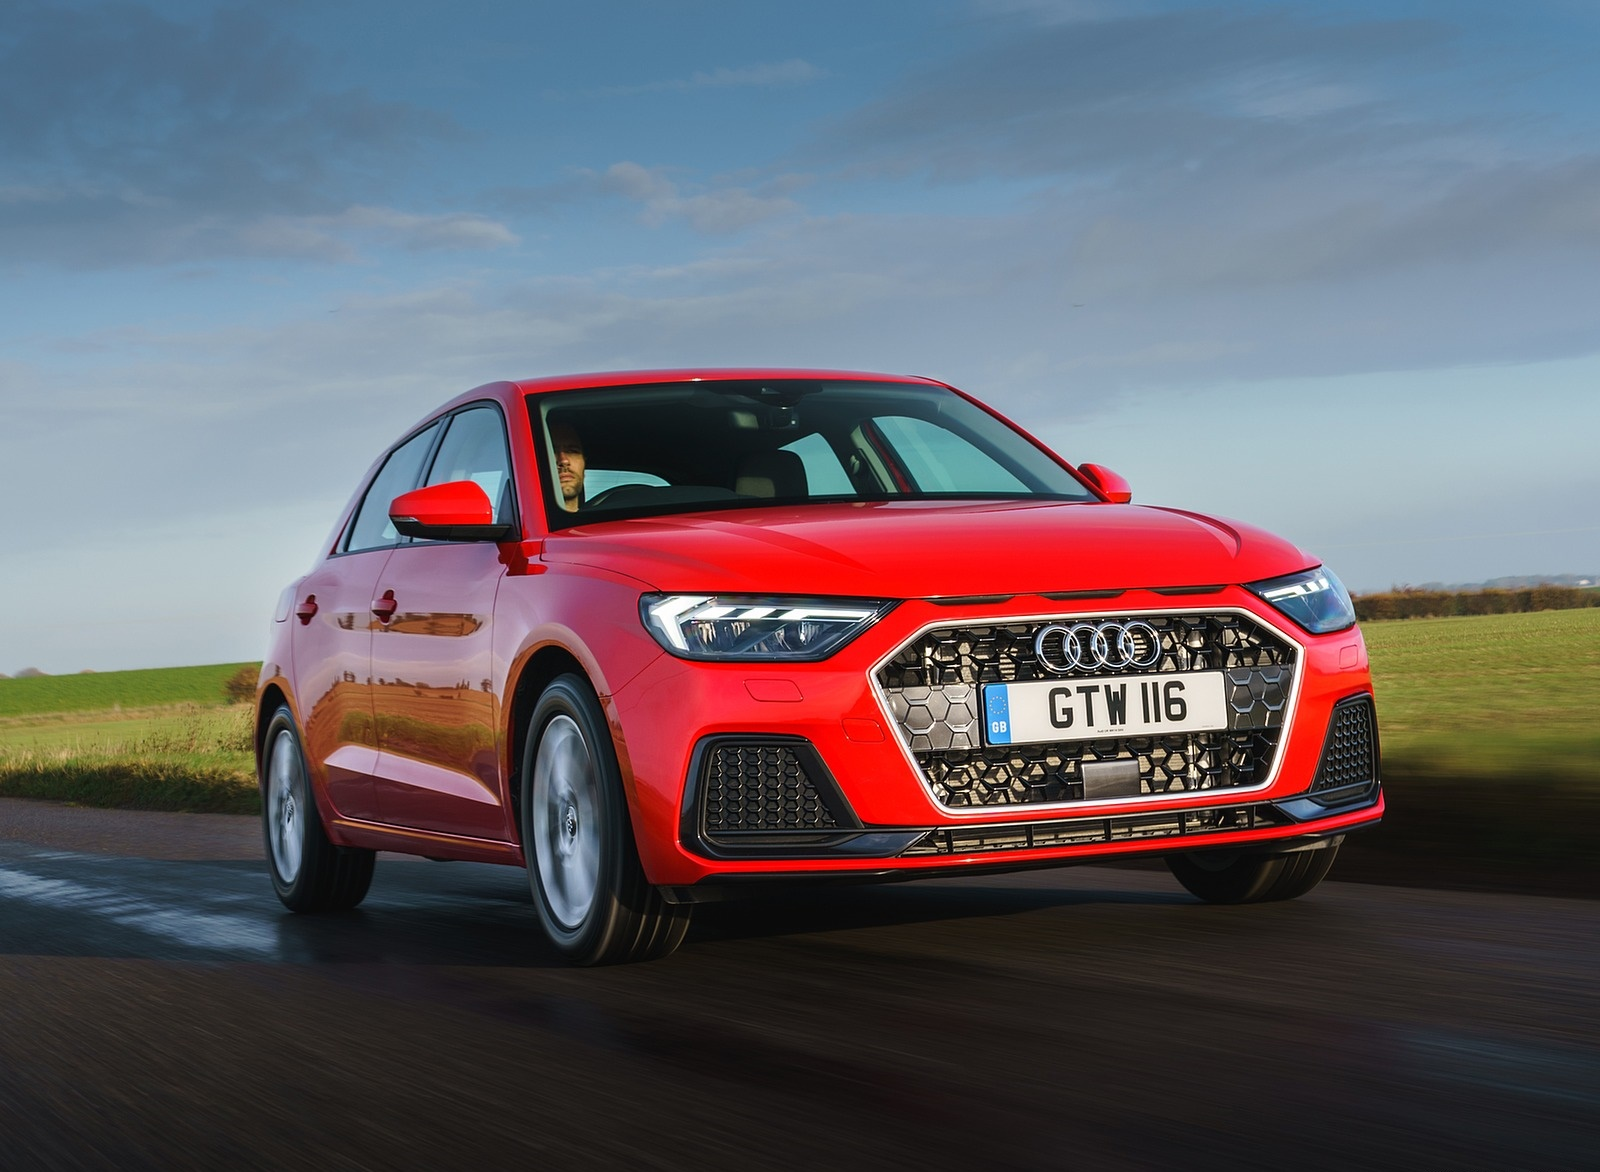 2019 Audi A1 Sportback 30 TFSI (UK-Spec) Front Three-Quarter Wallpapers (8)